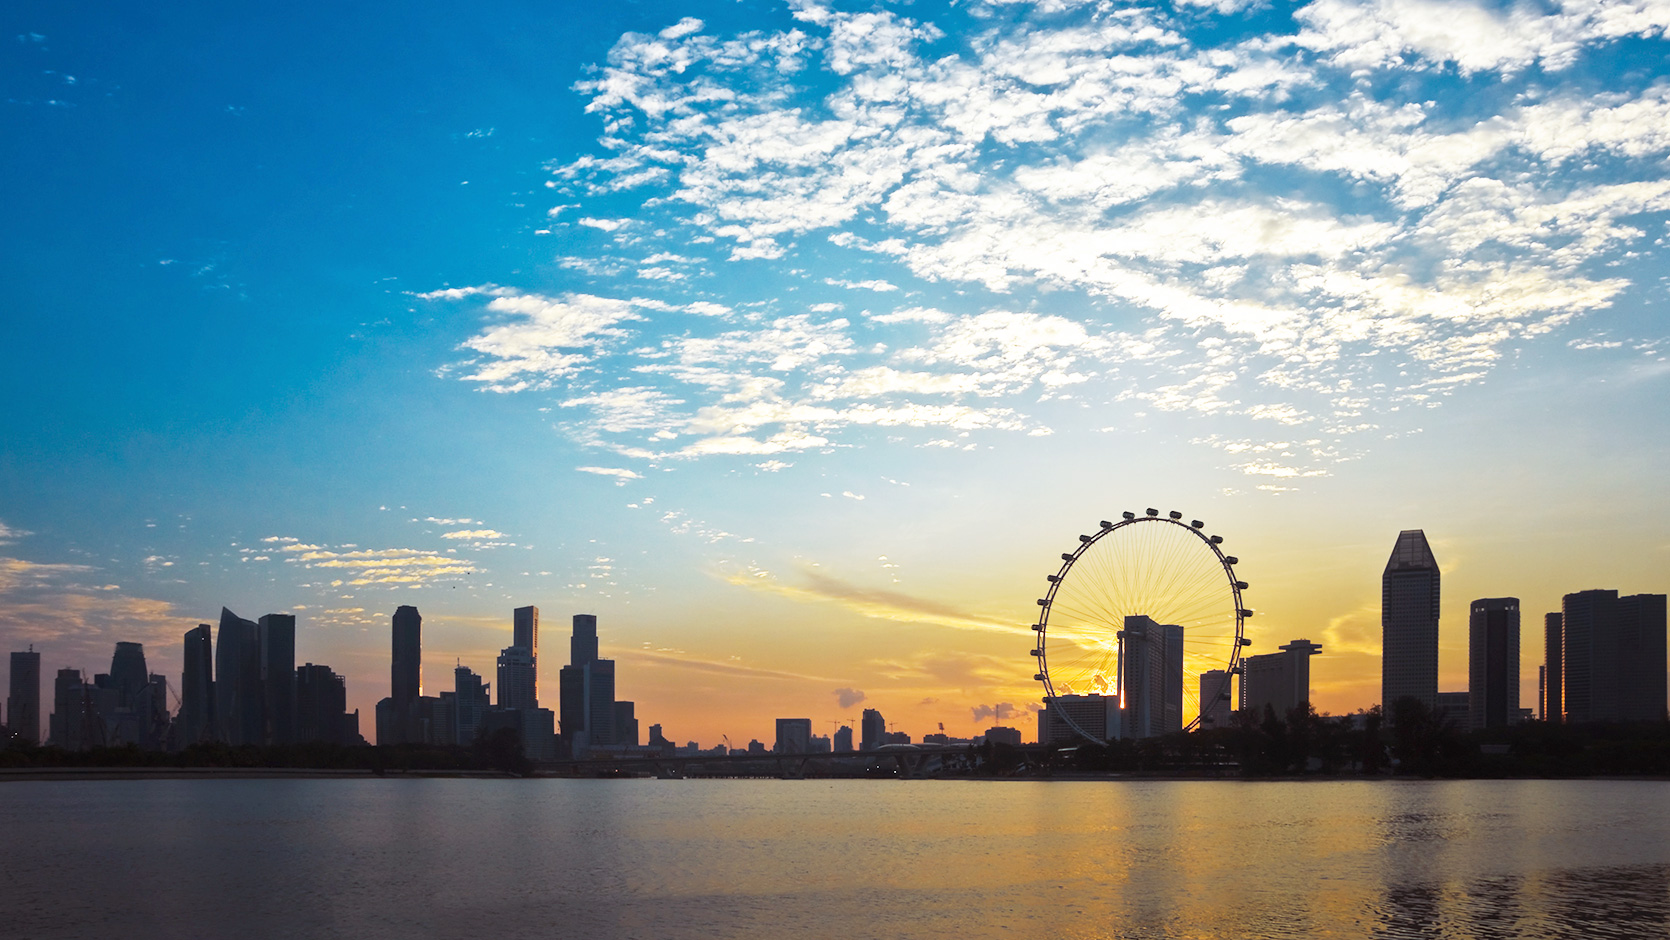 Sunrise silhouette of the Singapore CBD skyline, featuring the Singapore Flyer